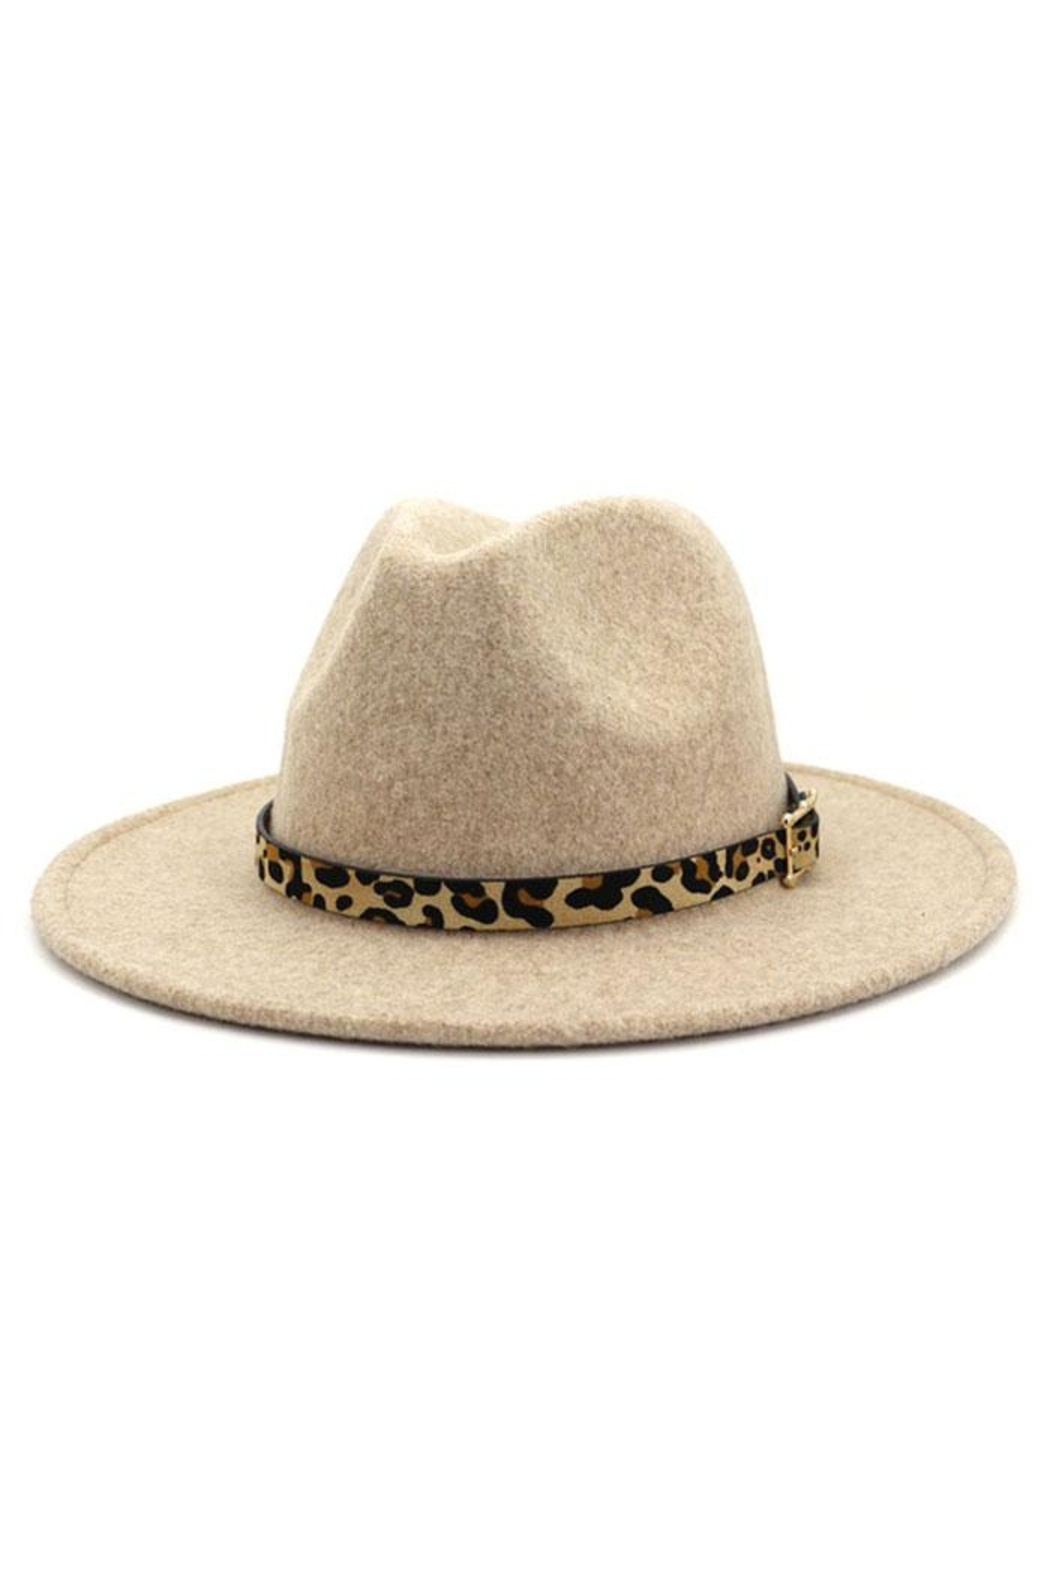 Nadya's Closet Leopard Belt Buckle Trendy Panama Hat - Front Cropped Image